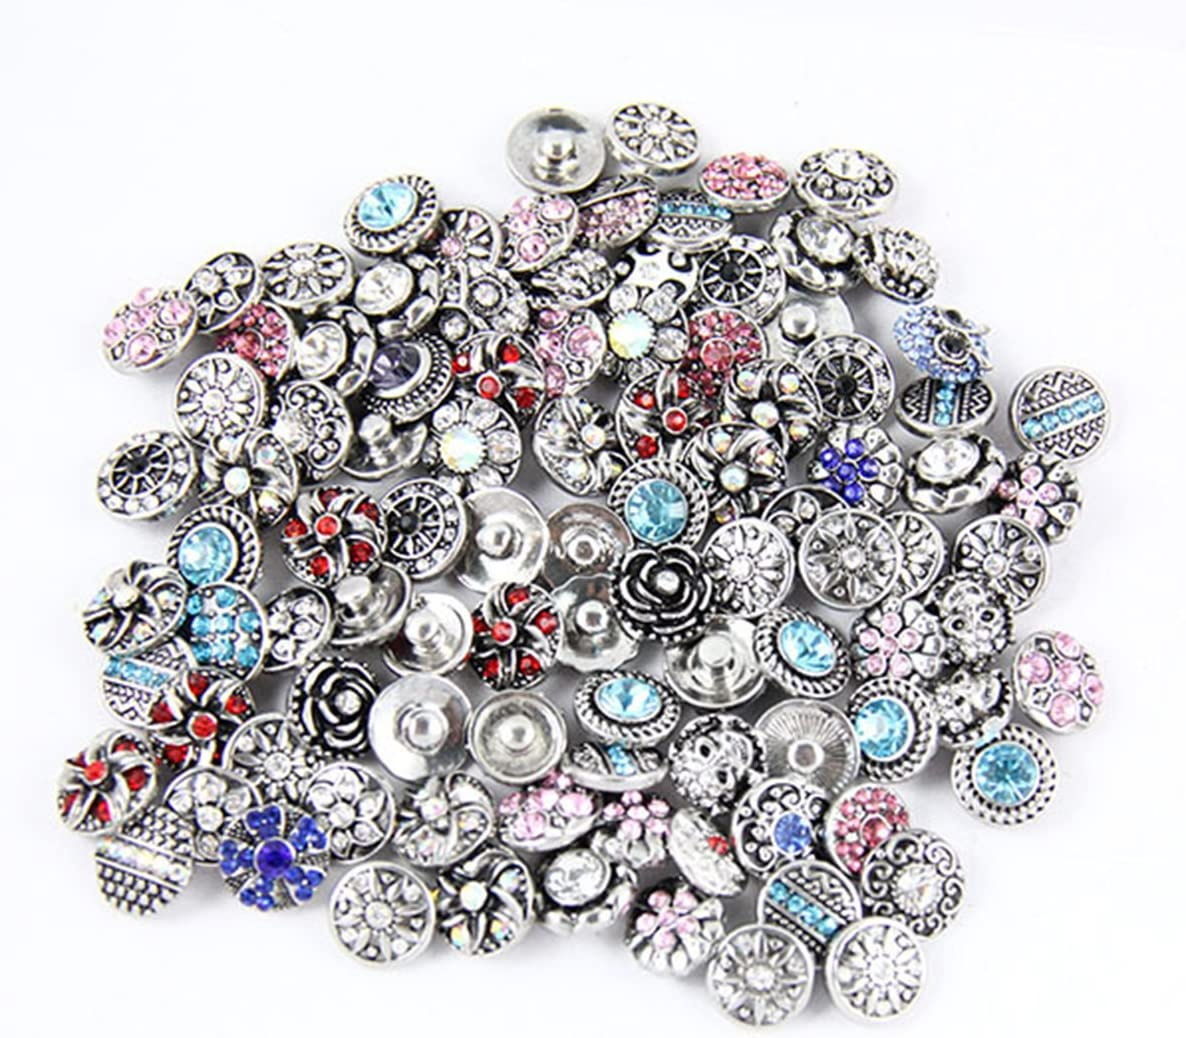 Gabcus Snap Jewelry Snap Button Necklace Fit 12mm 18mm Snap Buttons Metal Color: Fit 12mm Snap Button